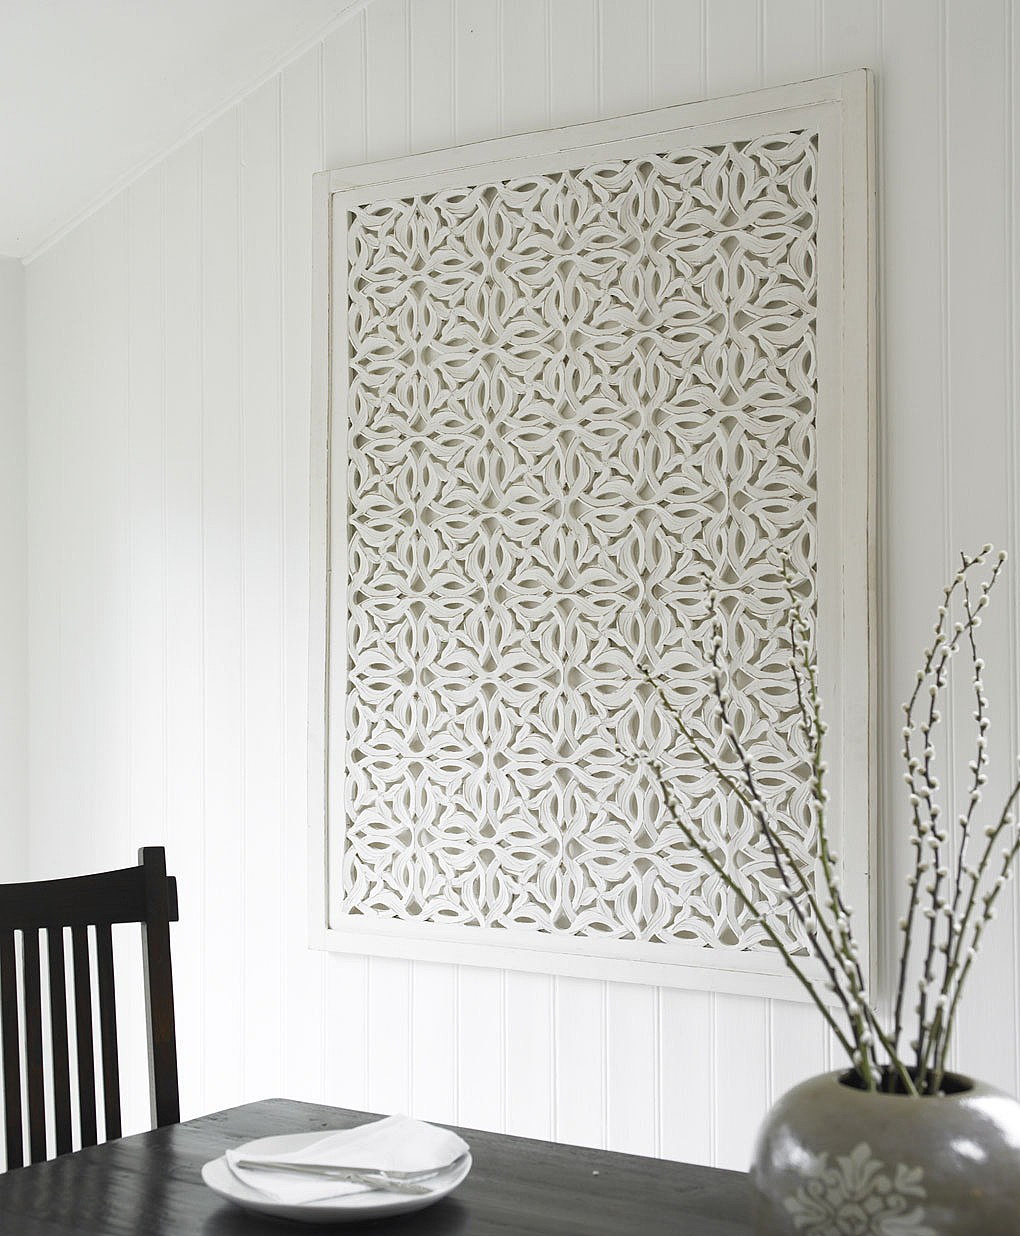 Wall Panels For Decor : The essential points any homeowners have to consider